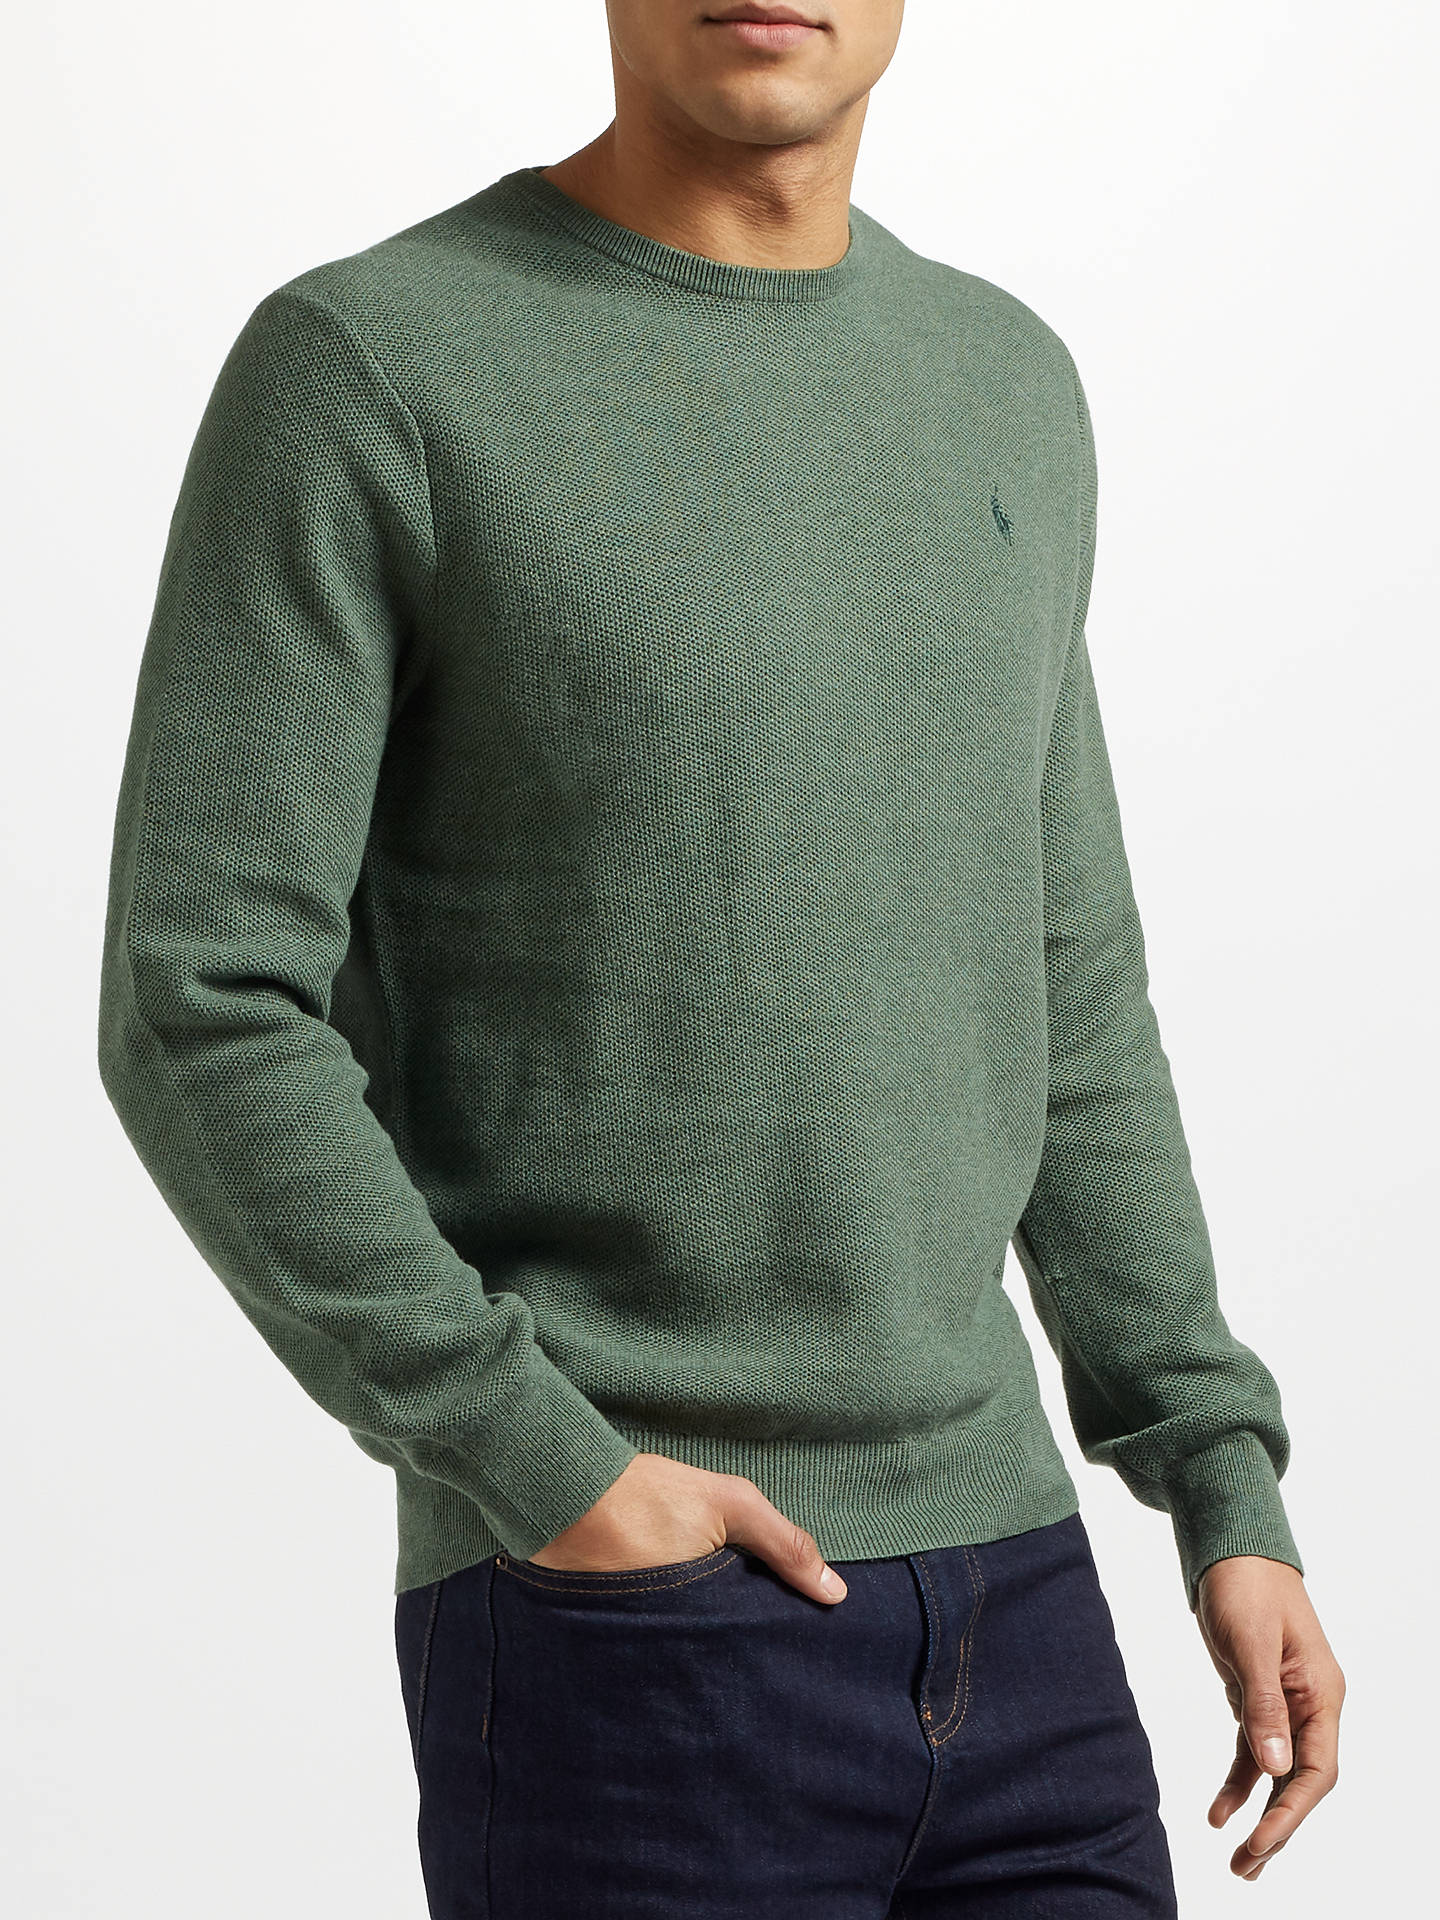 75b23cc4ba3 Buy Polo Ralph Lauren Pima Cotton Crew Neck Sweatshirt